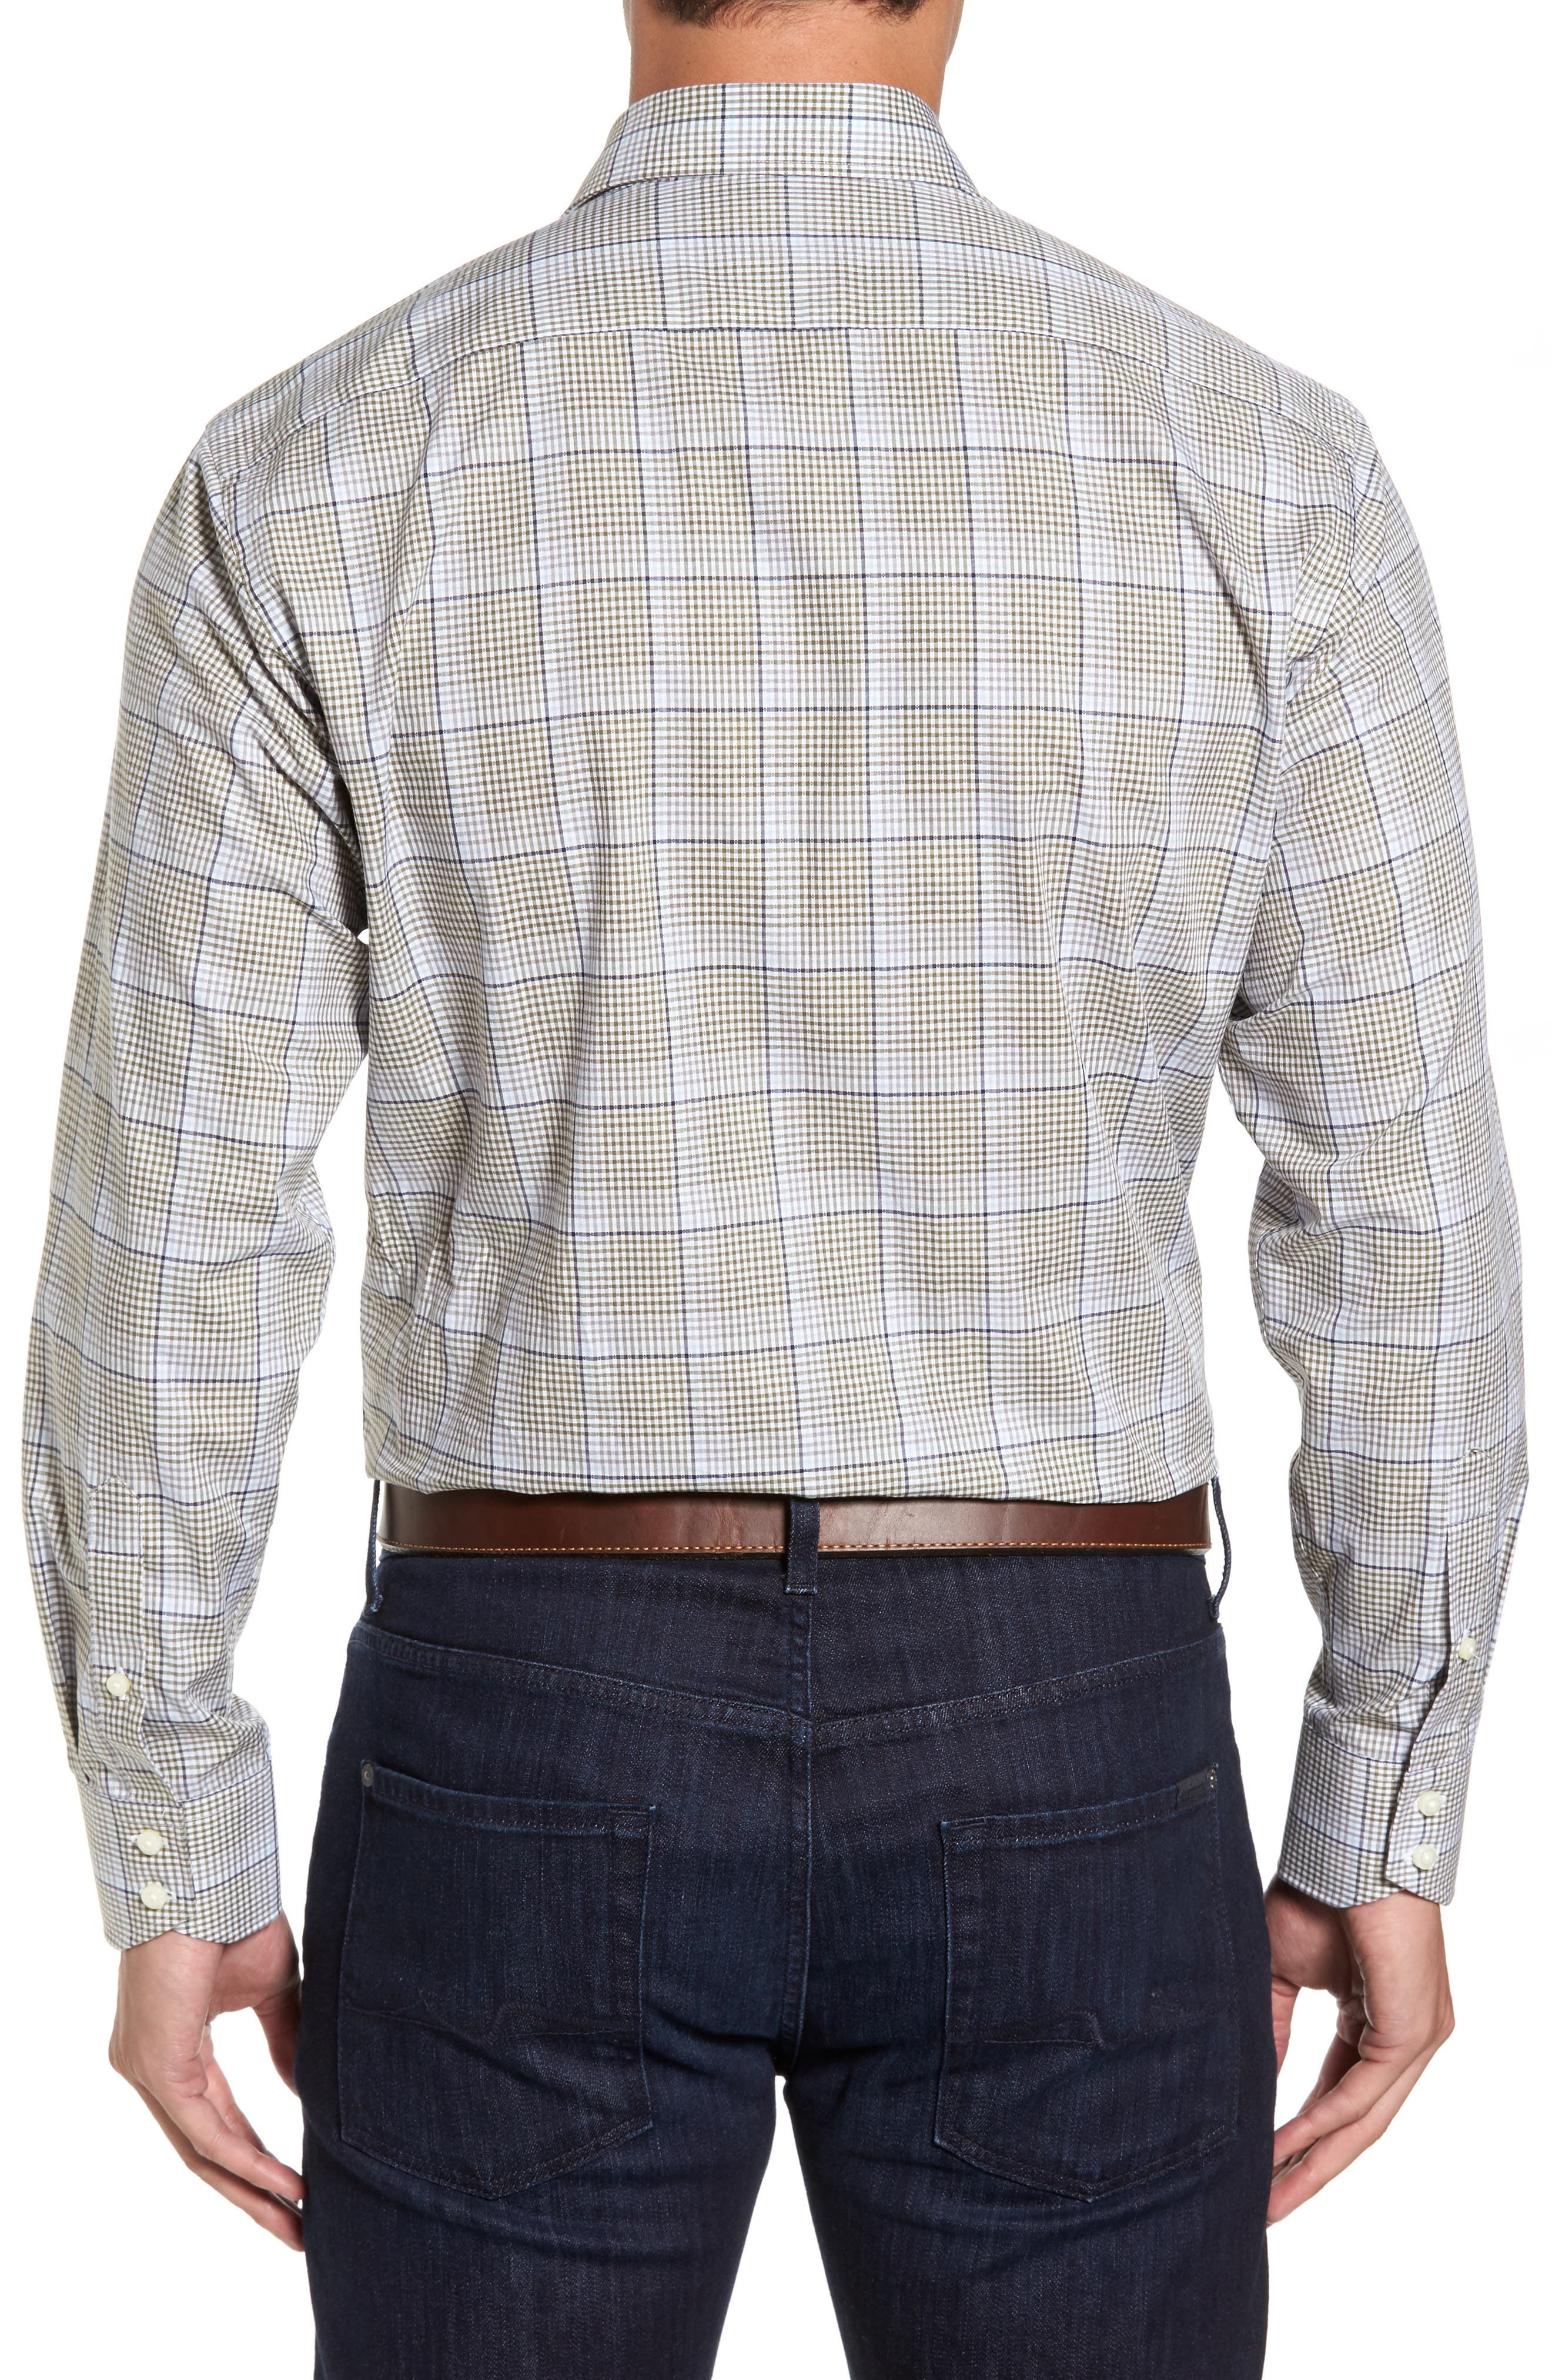 Diamond Regular Fit Dobby Check Sport Shirt,                             Alternate thumbnail 2, color,                             300